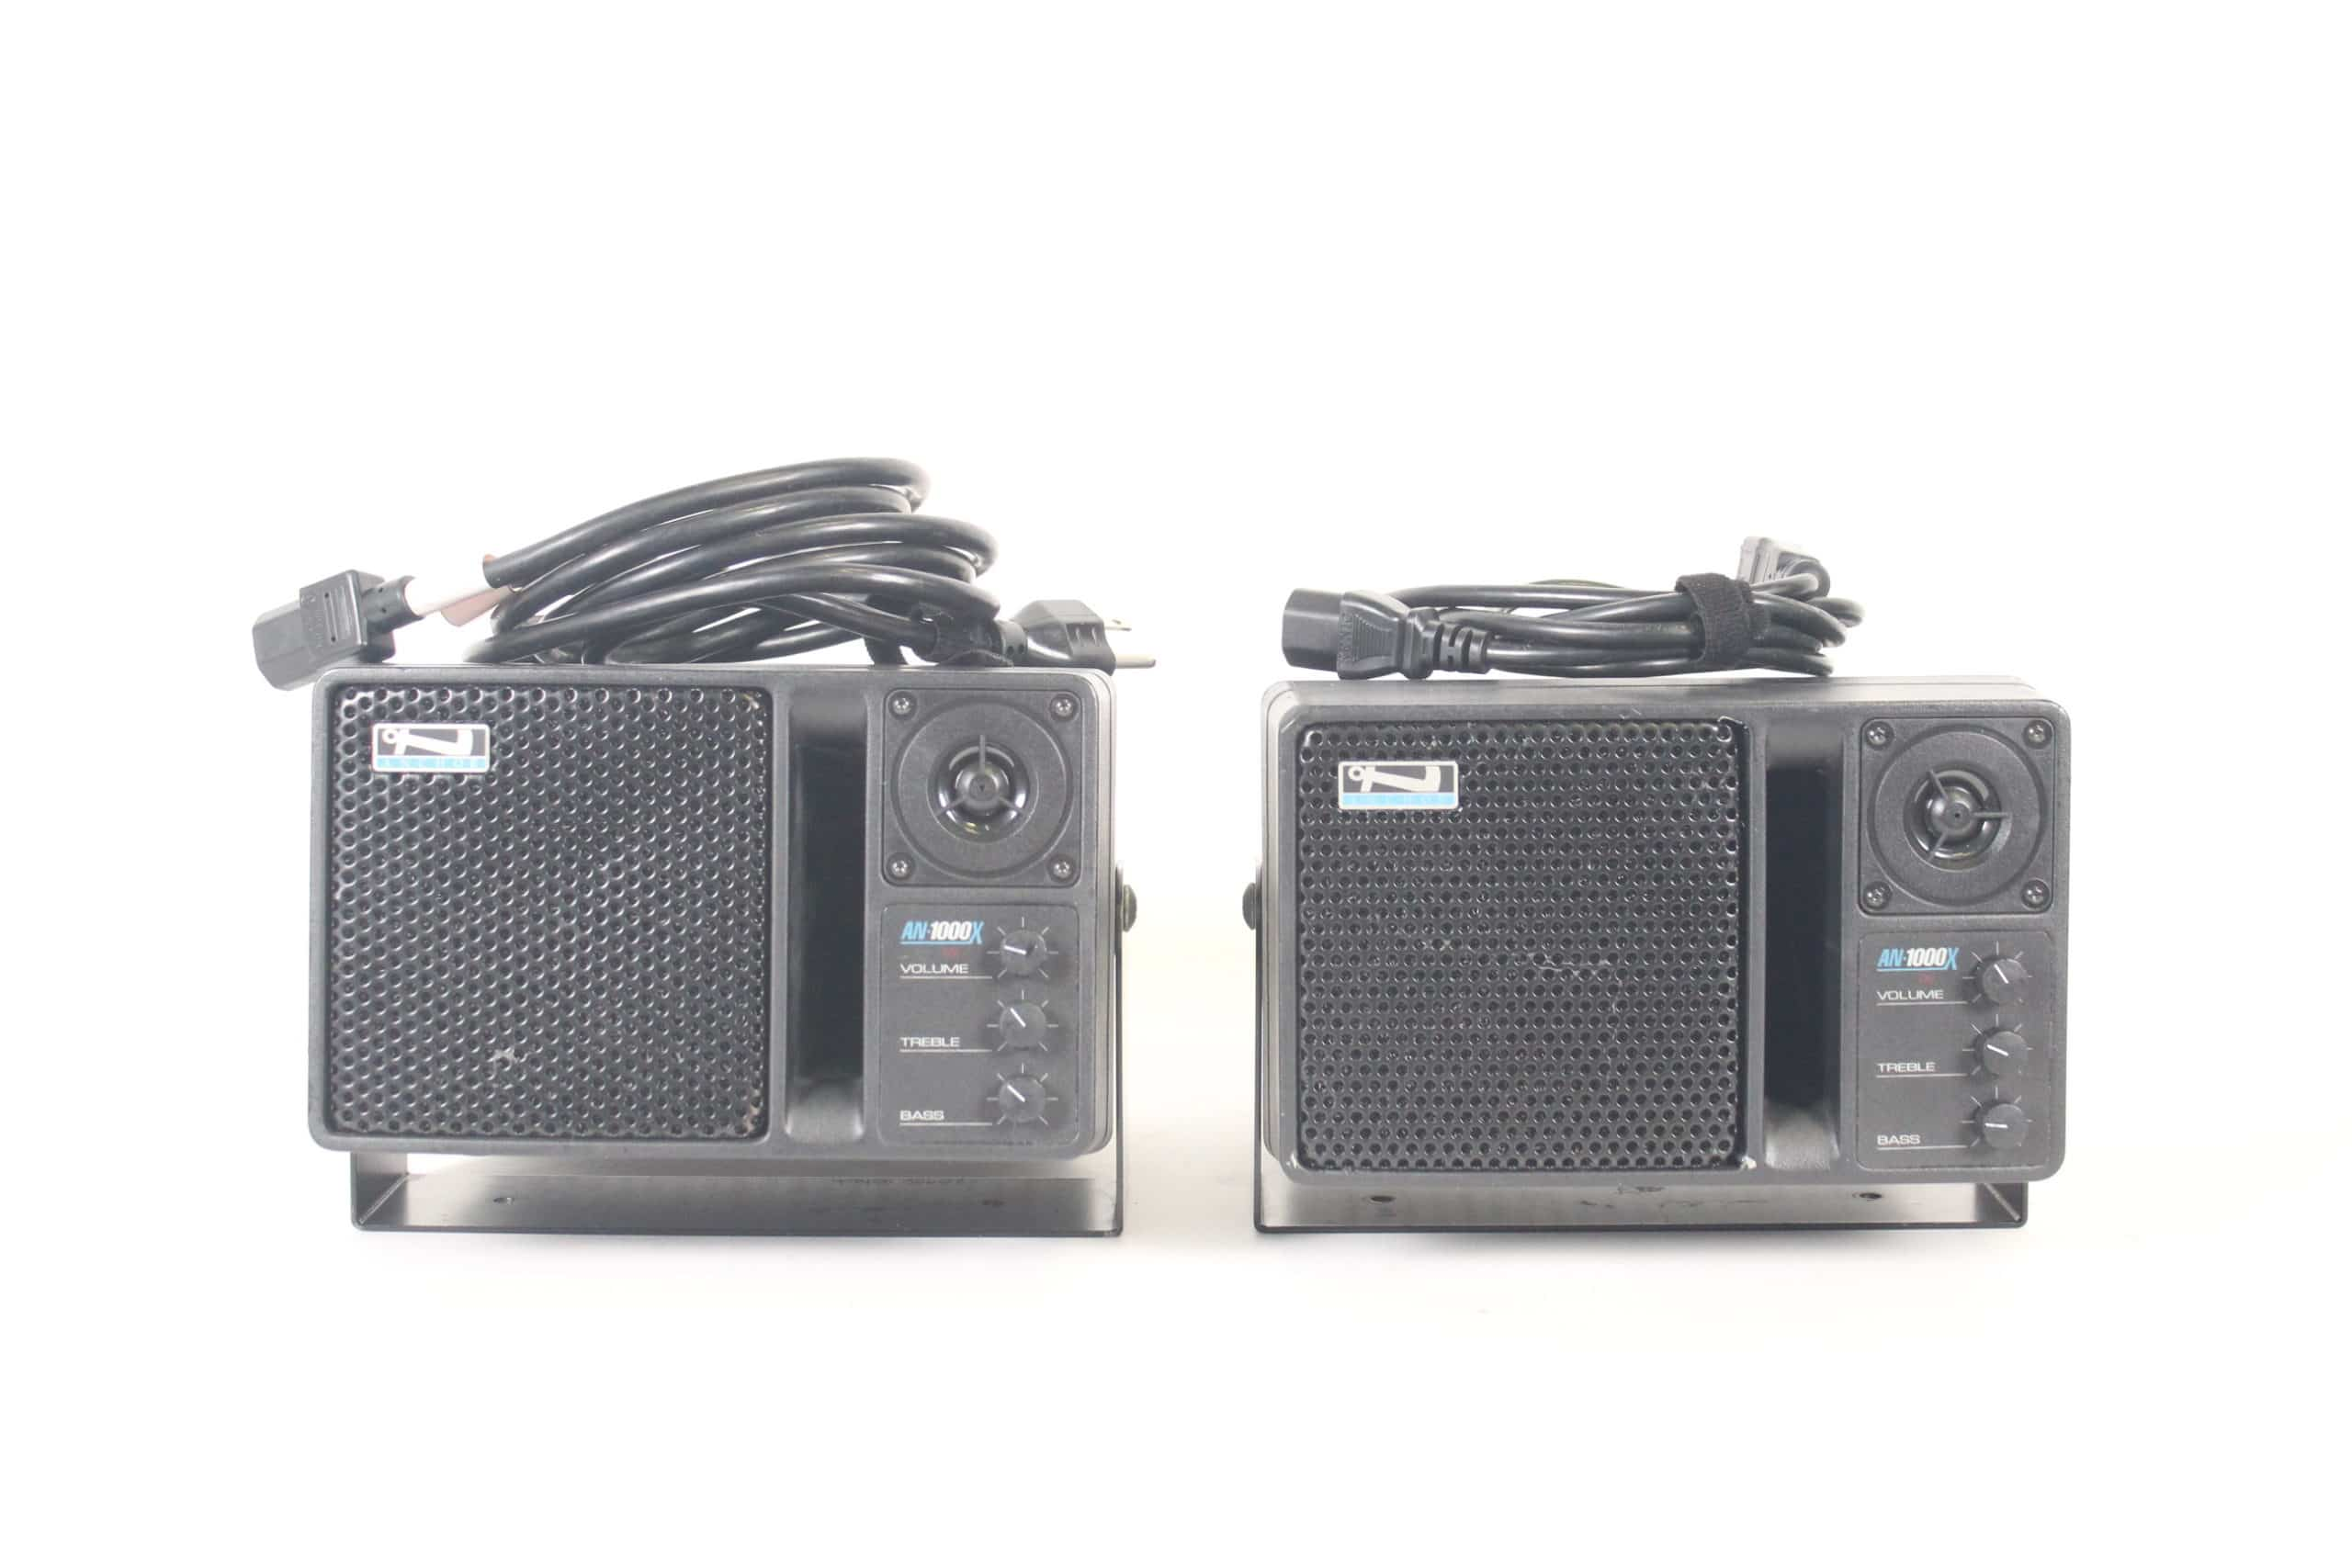 anchor-an1000x-monitor-speaker-pair-in-benson-box-sound-quality-issues MAIN